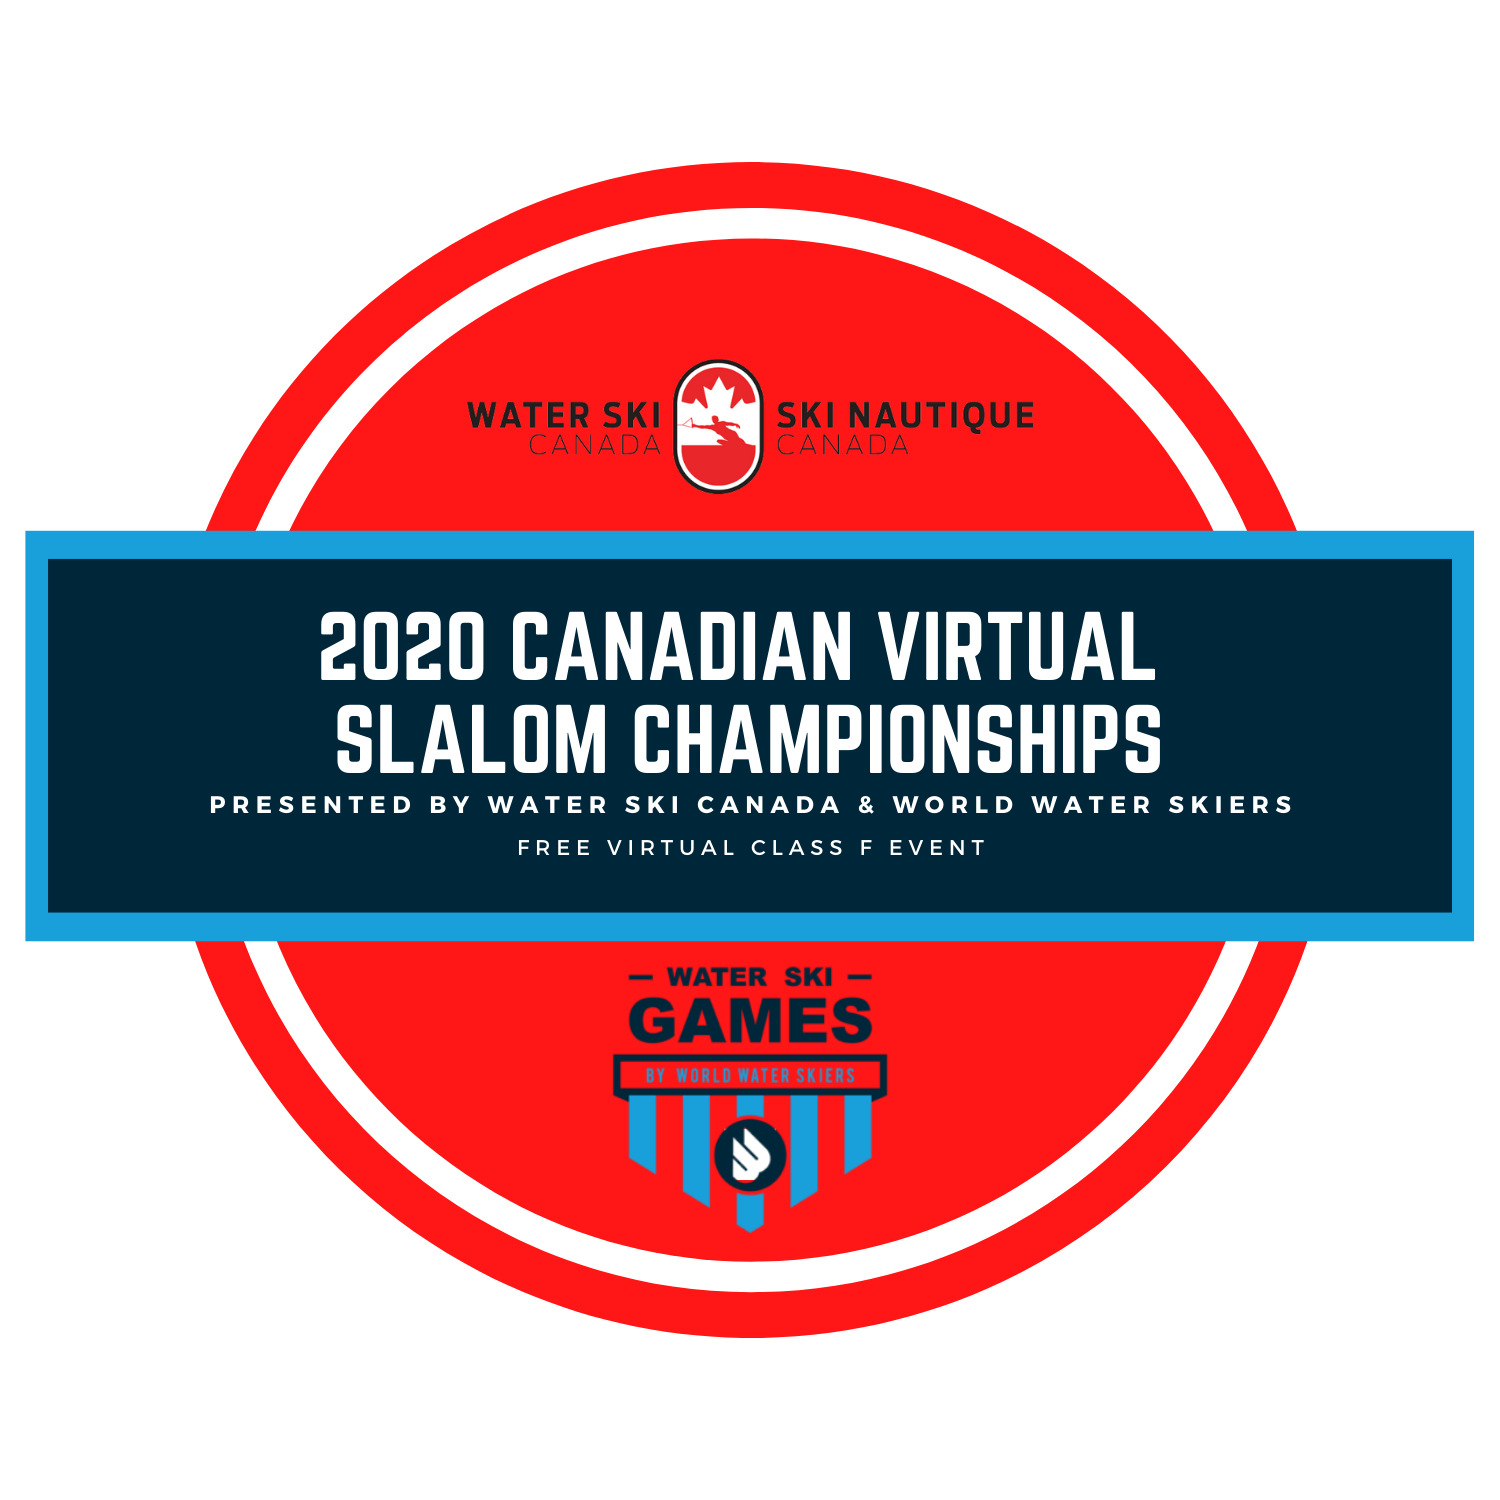 THE 2020 CANADIAN VIRTUAL SLALOM CHAMPIONSHIPS